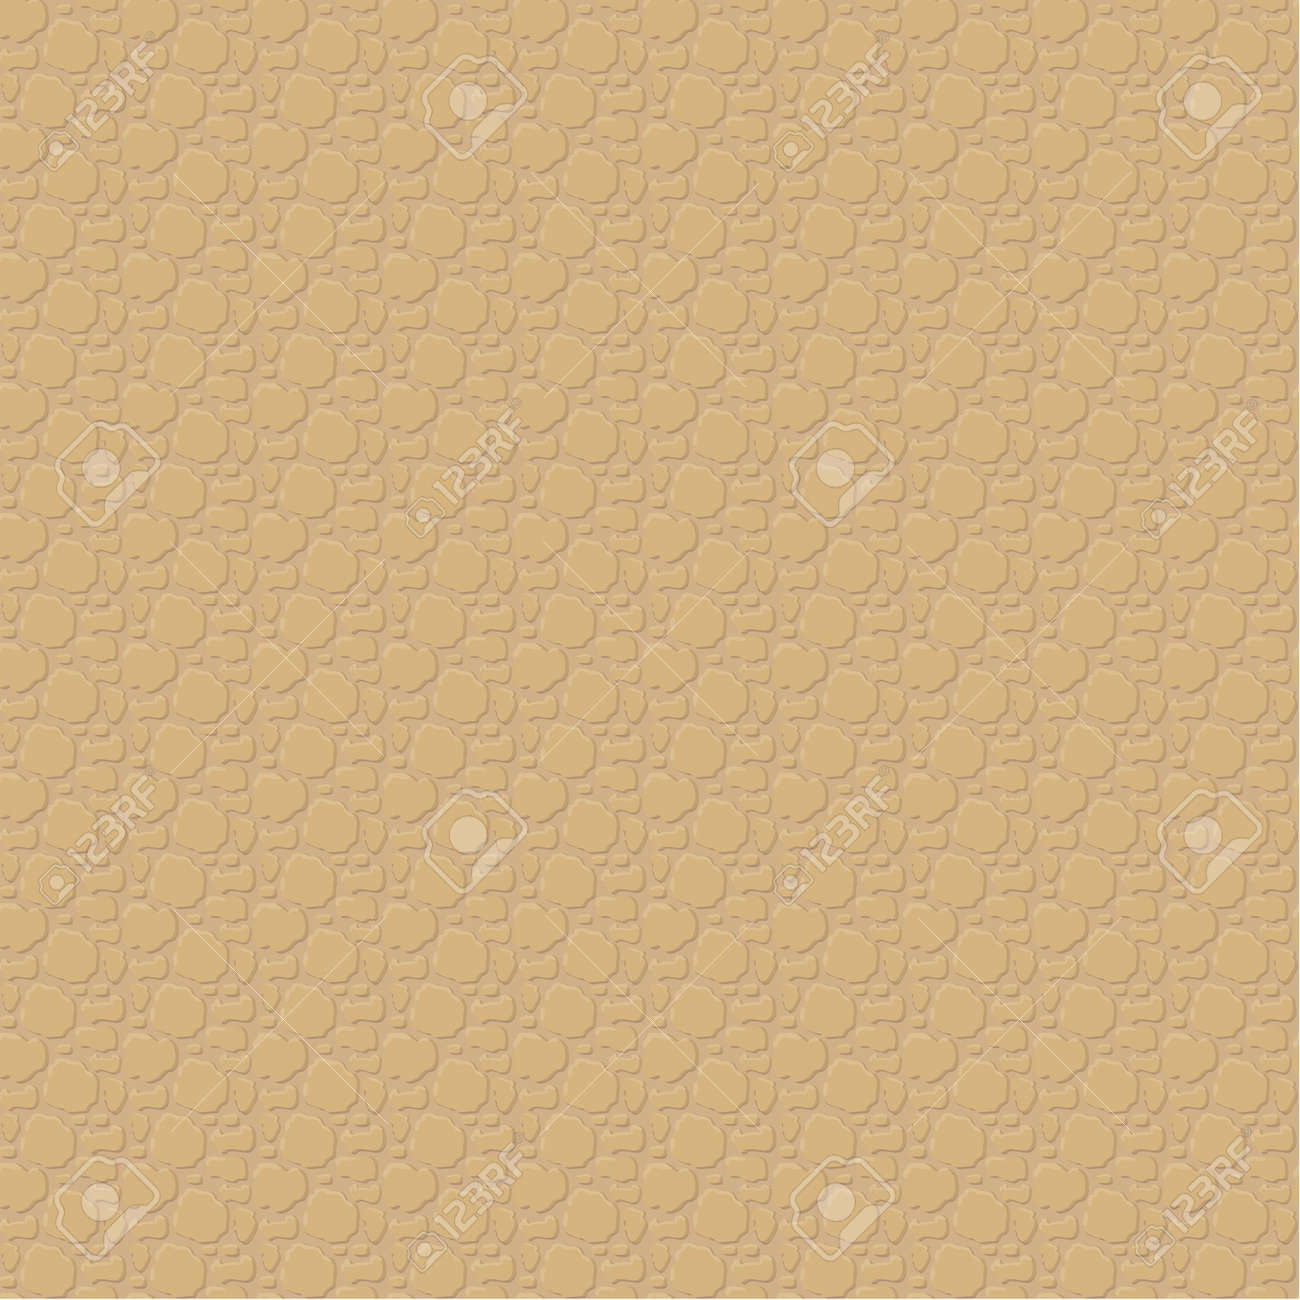 Elegant Seamless Beige Tile Texture Stock Vector With Ceiling